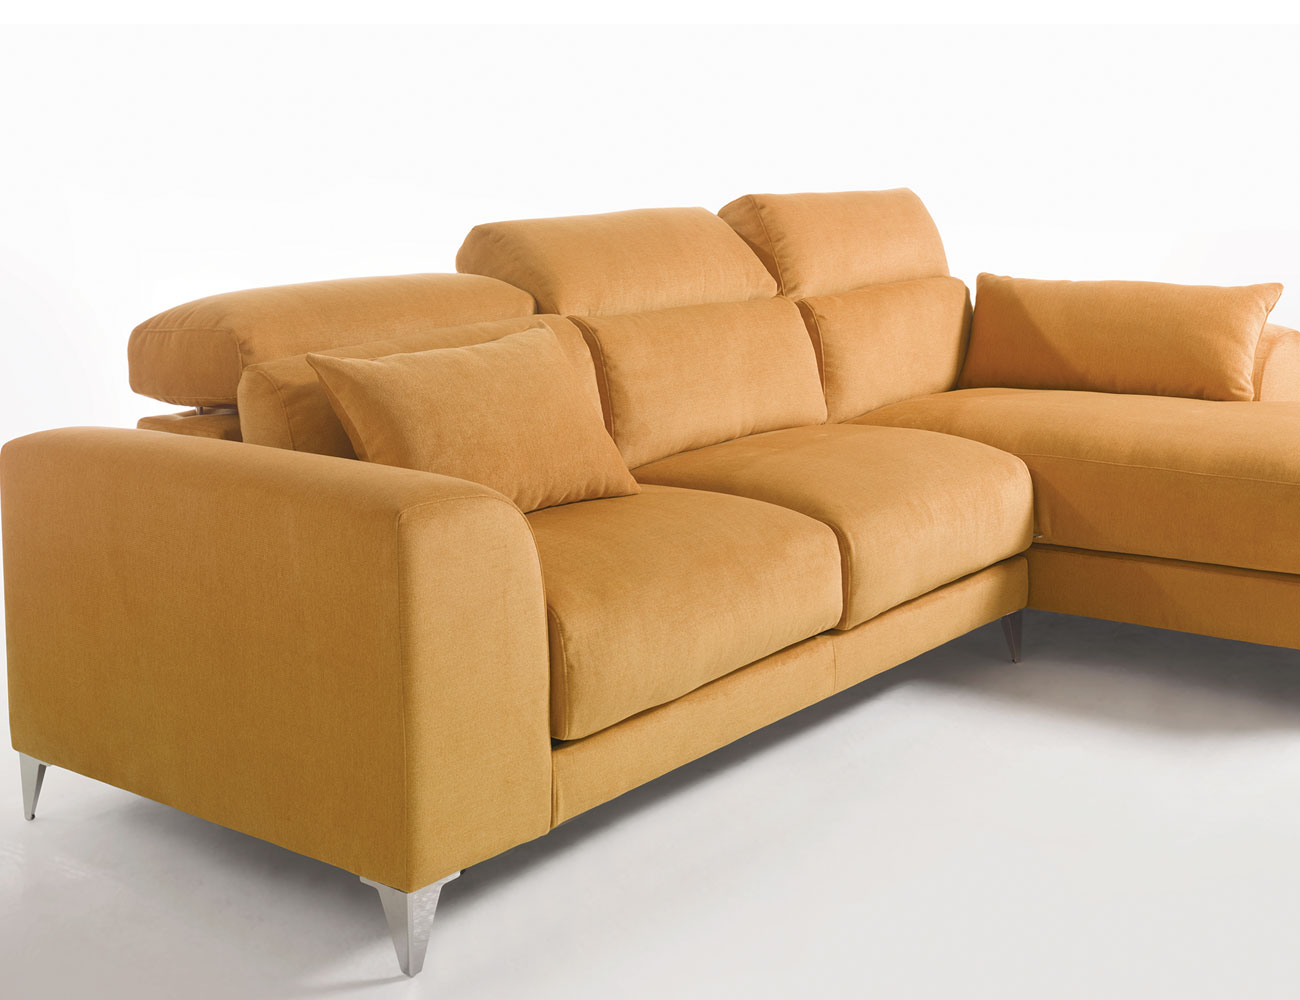 Sofa chaiselongue gran lujo decorativo patas altas amarillo 231